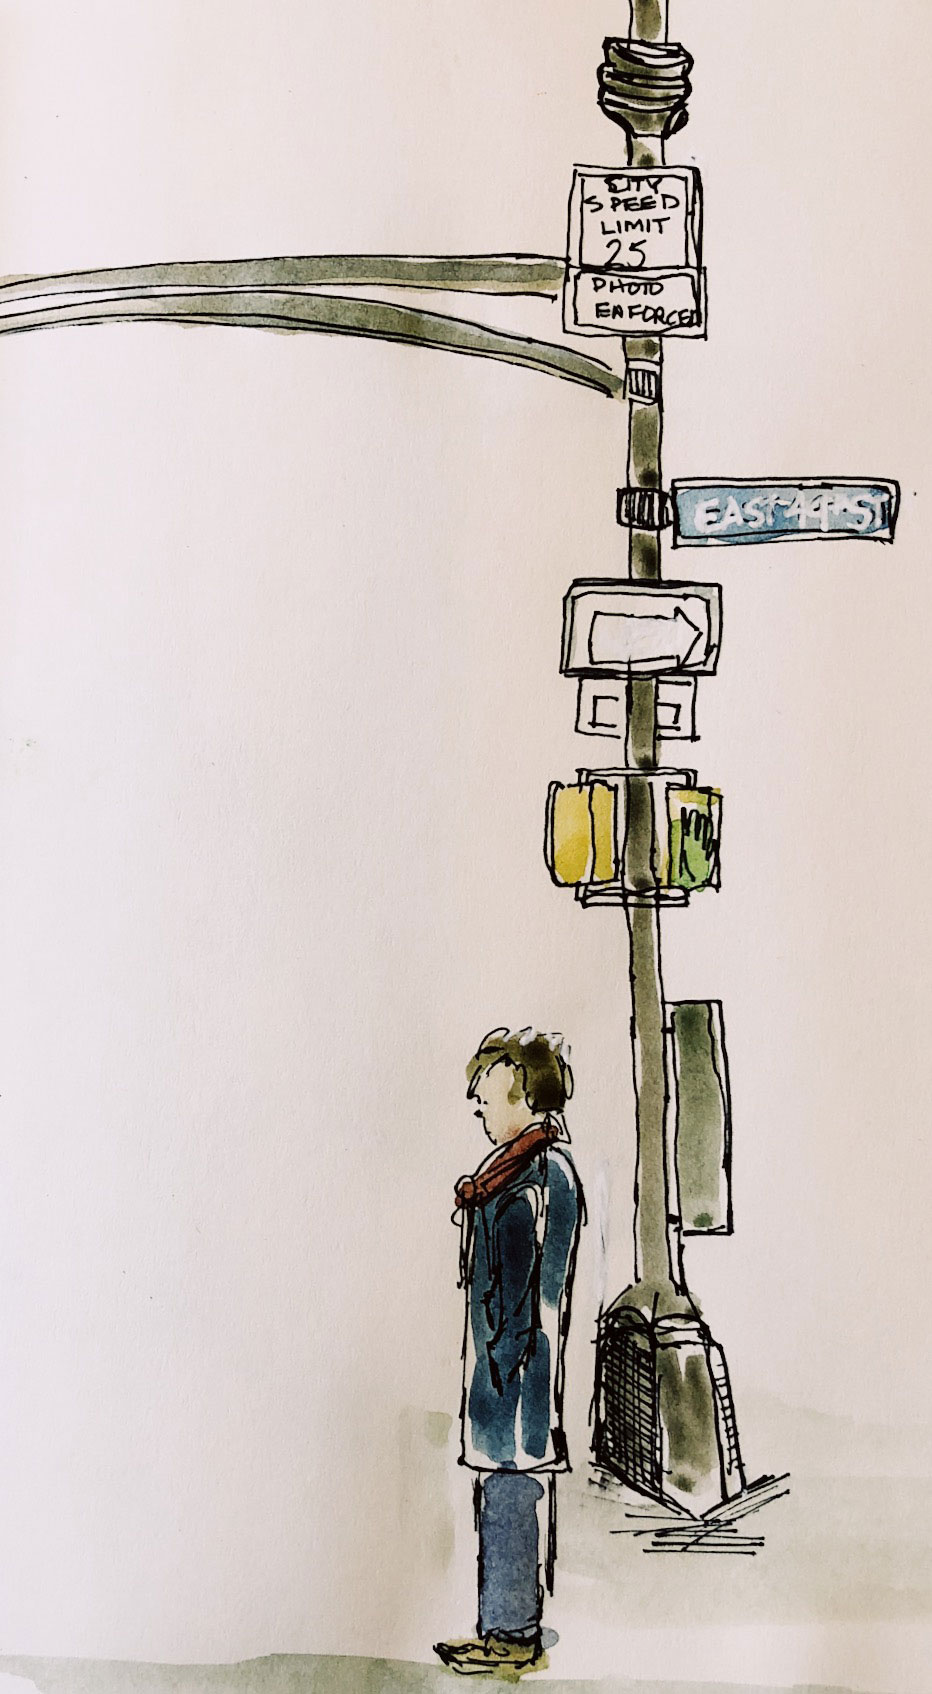 Urban watercolor sketch of a man on 49th ST. in New York City